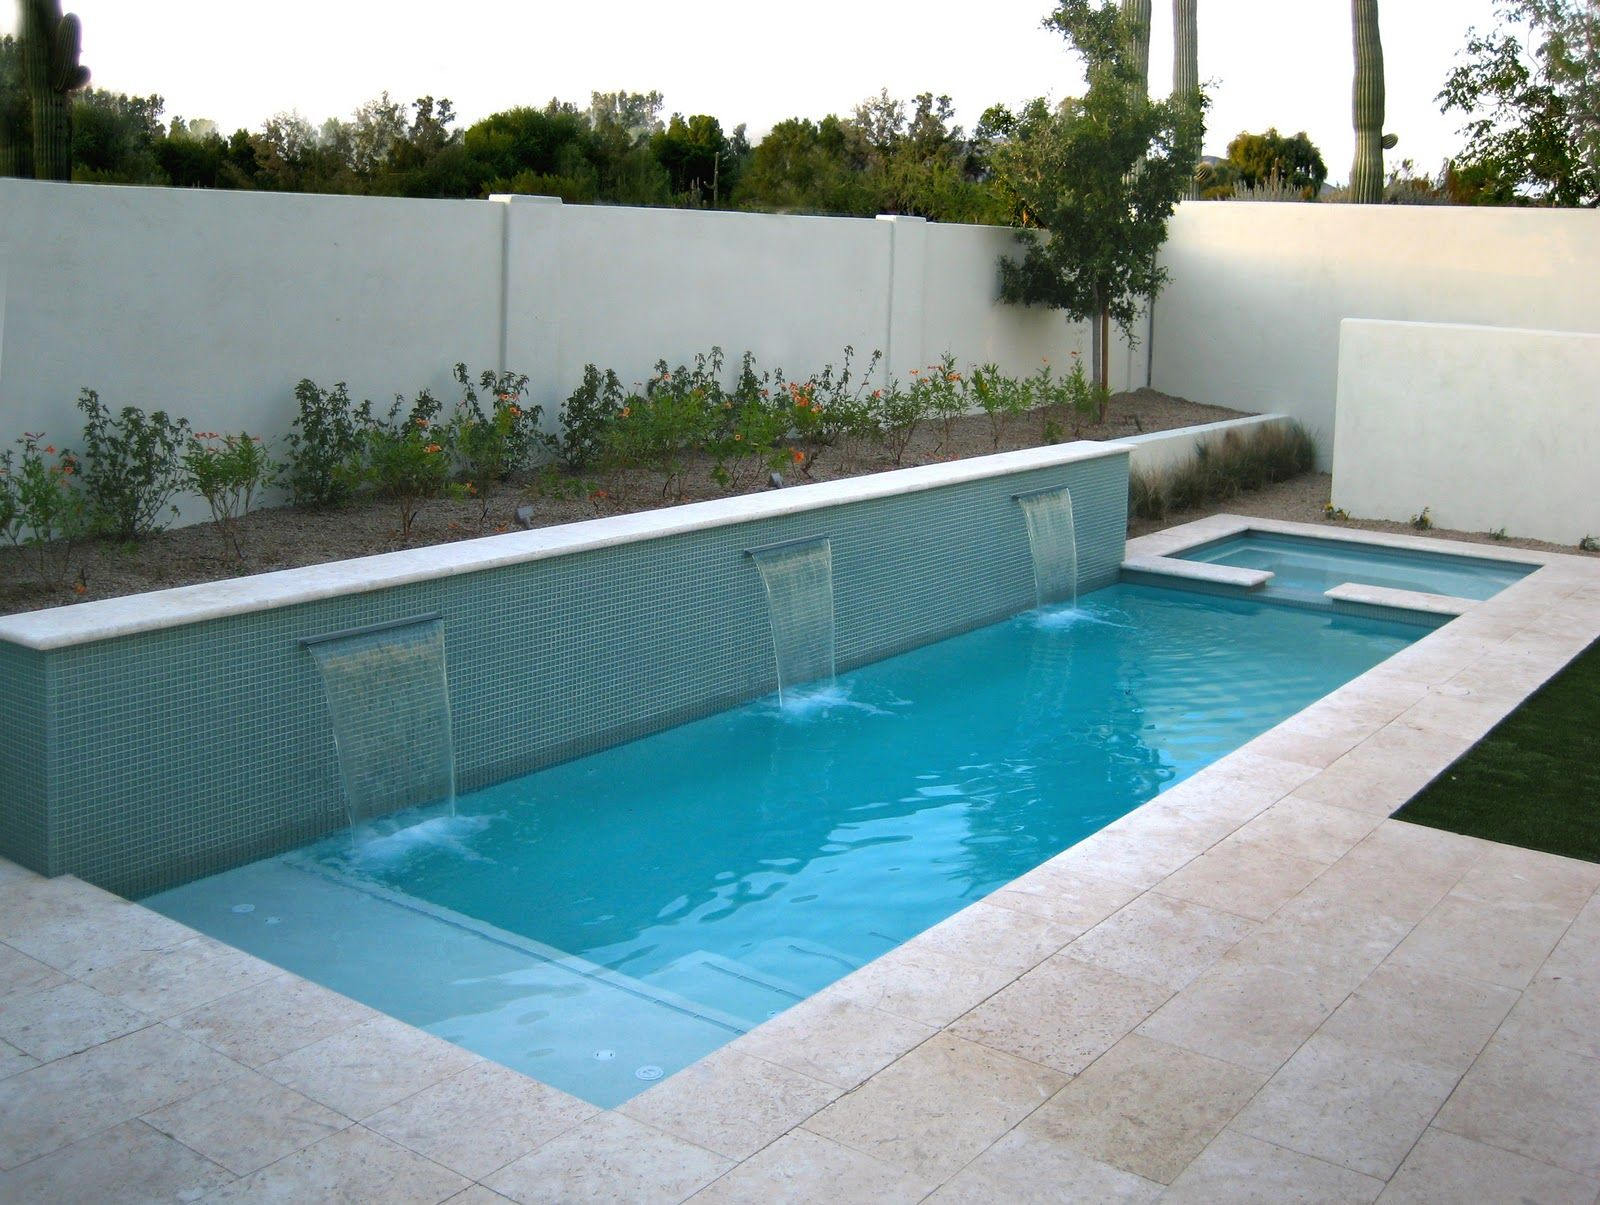 Kidney Shaped Inground Swimming Pool Designs For Space